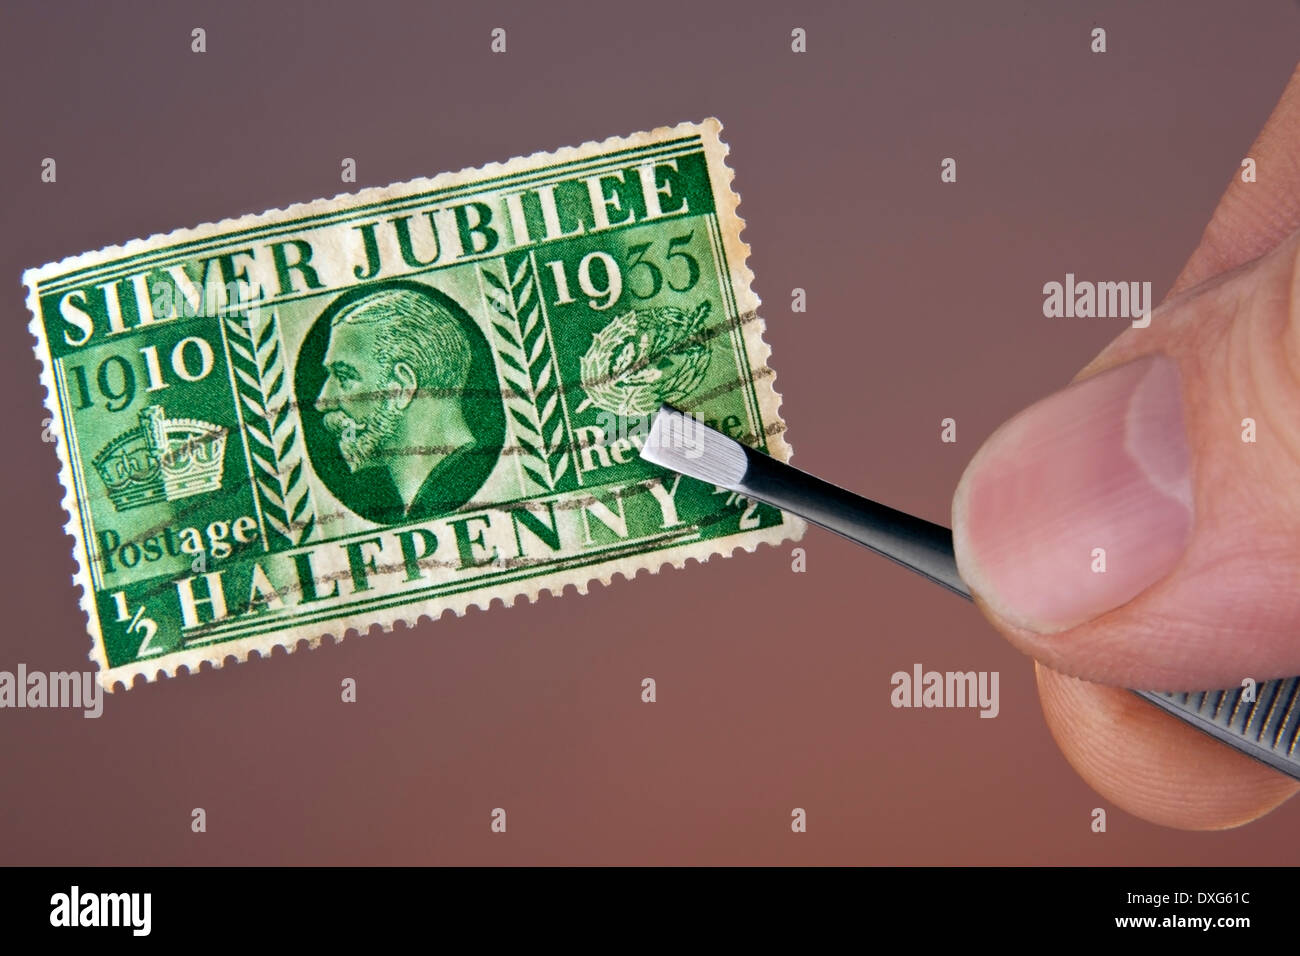 Stamp Collecting - Philately - Stock Image